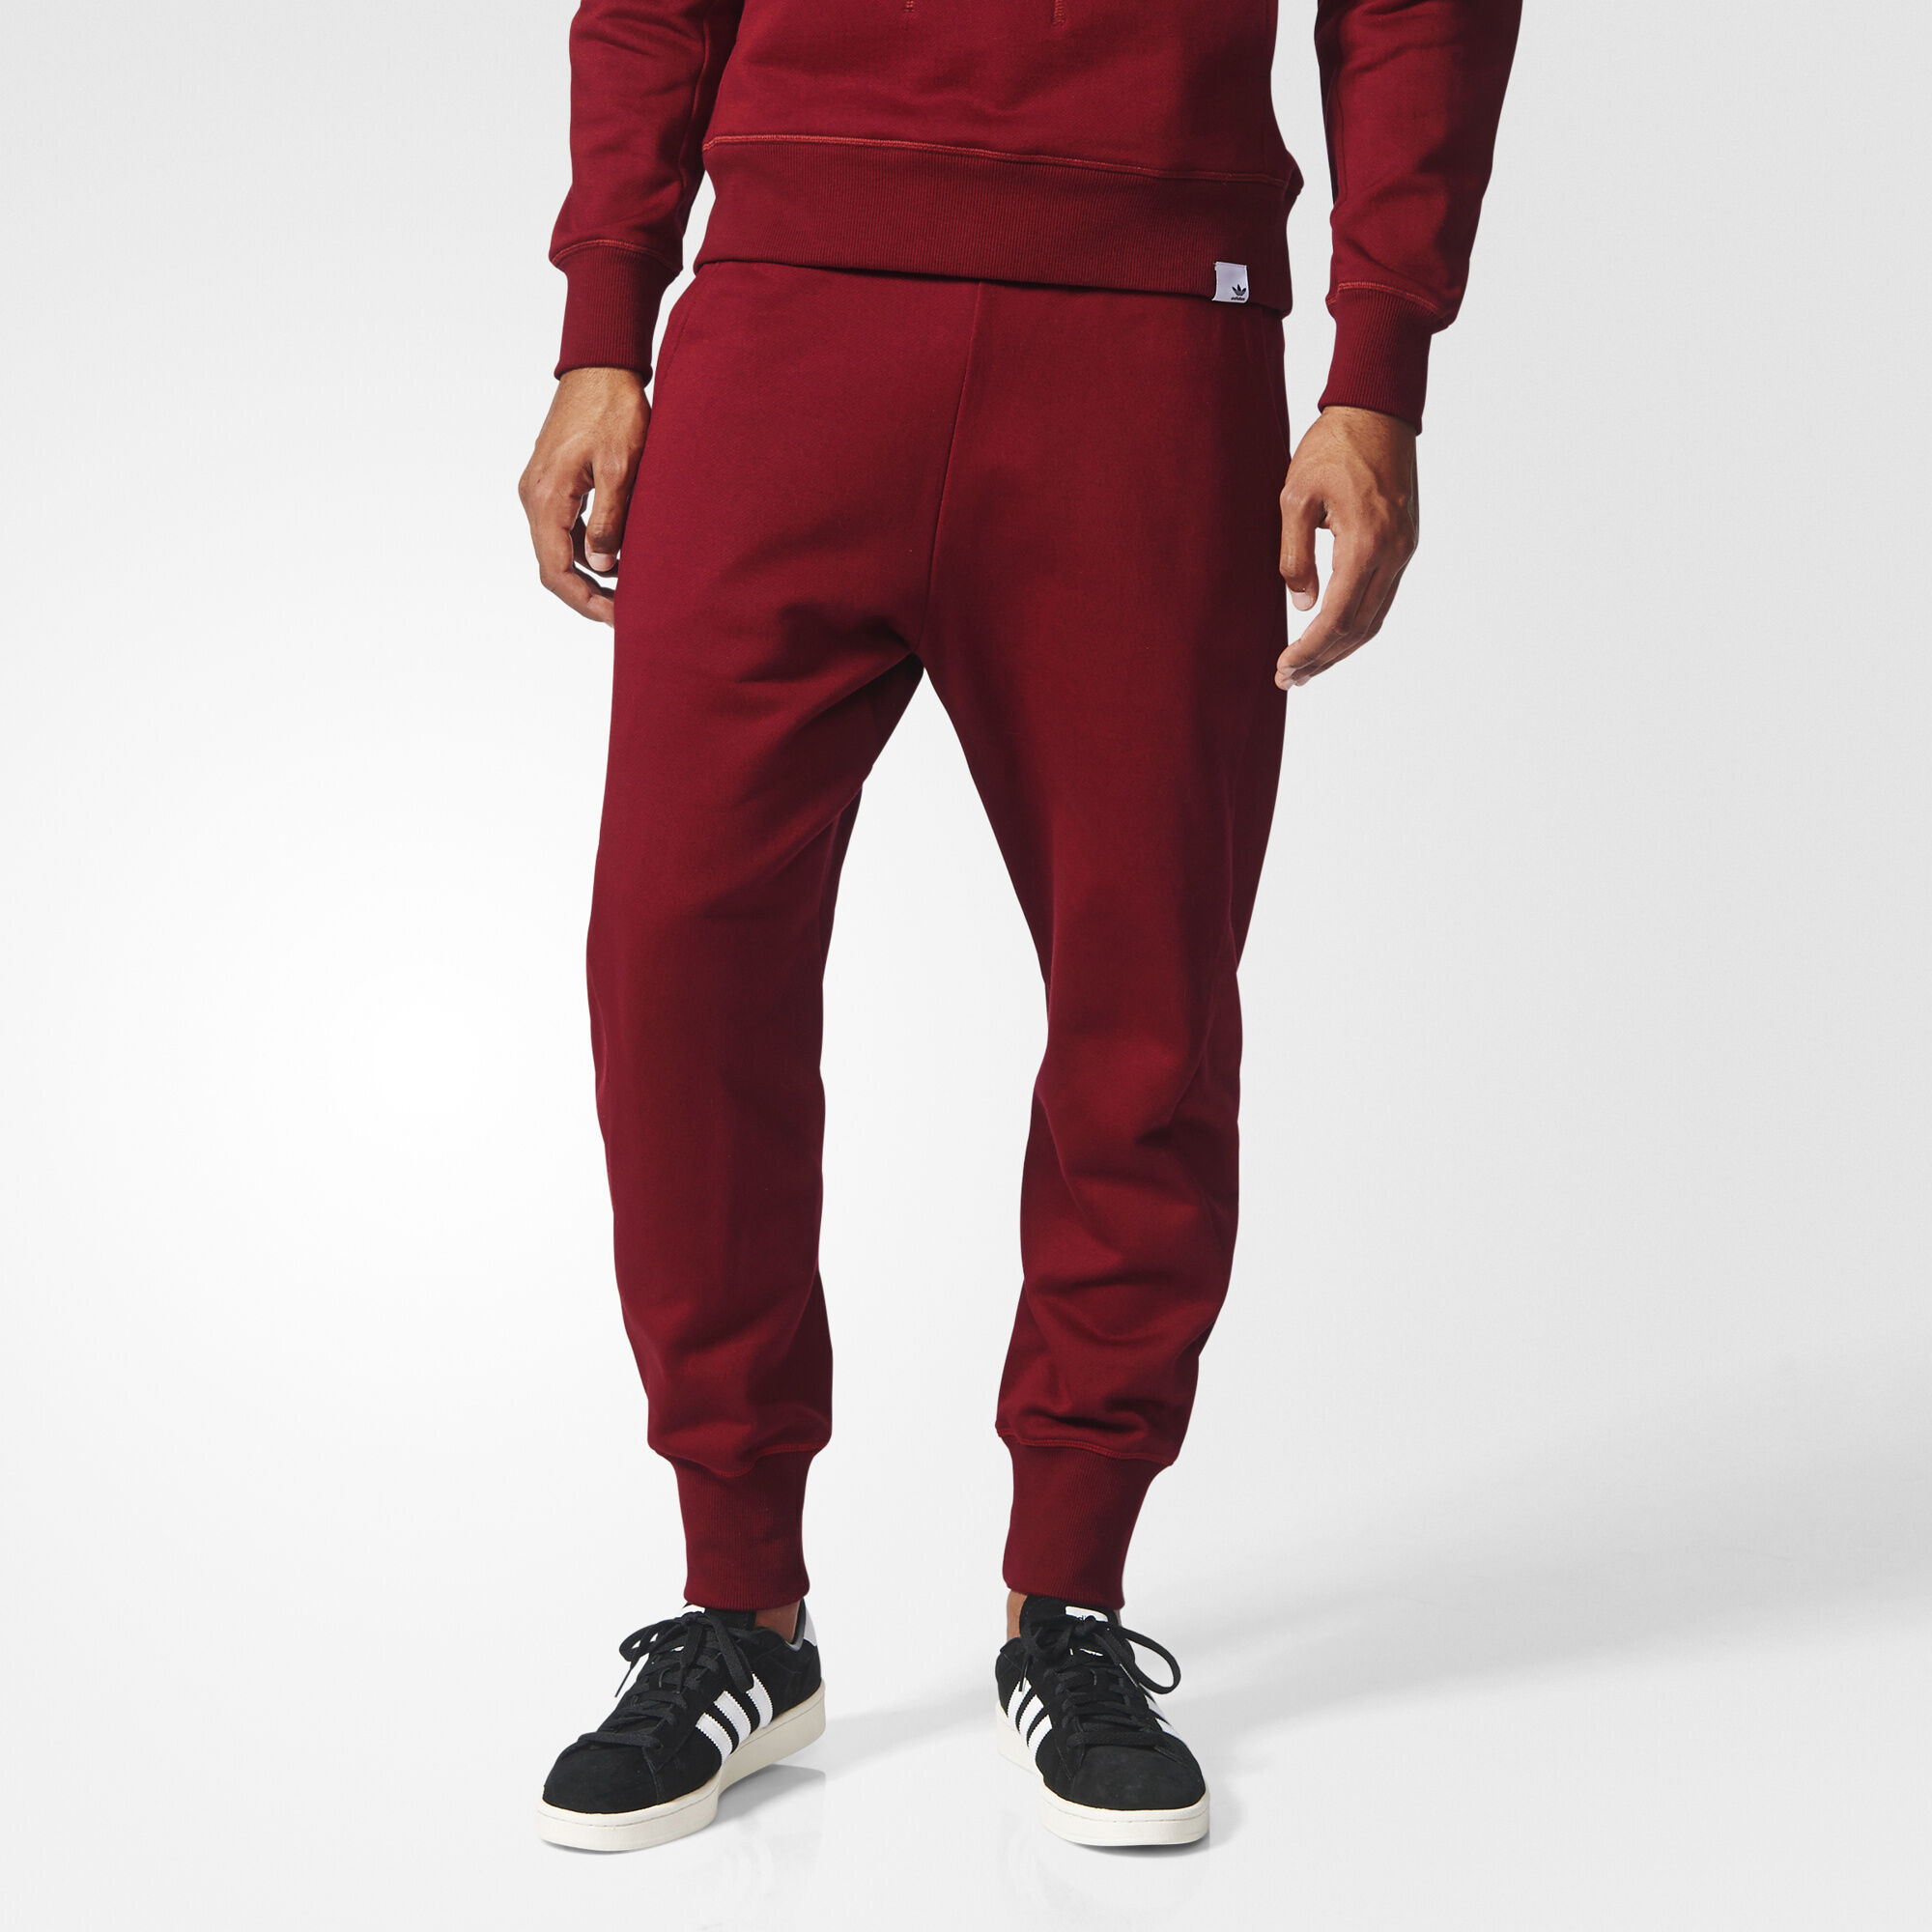 adidas XBYO Sweat Pants adidas Sweat Red Red | 6d6a614 - temperaturamning.website